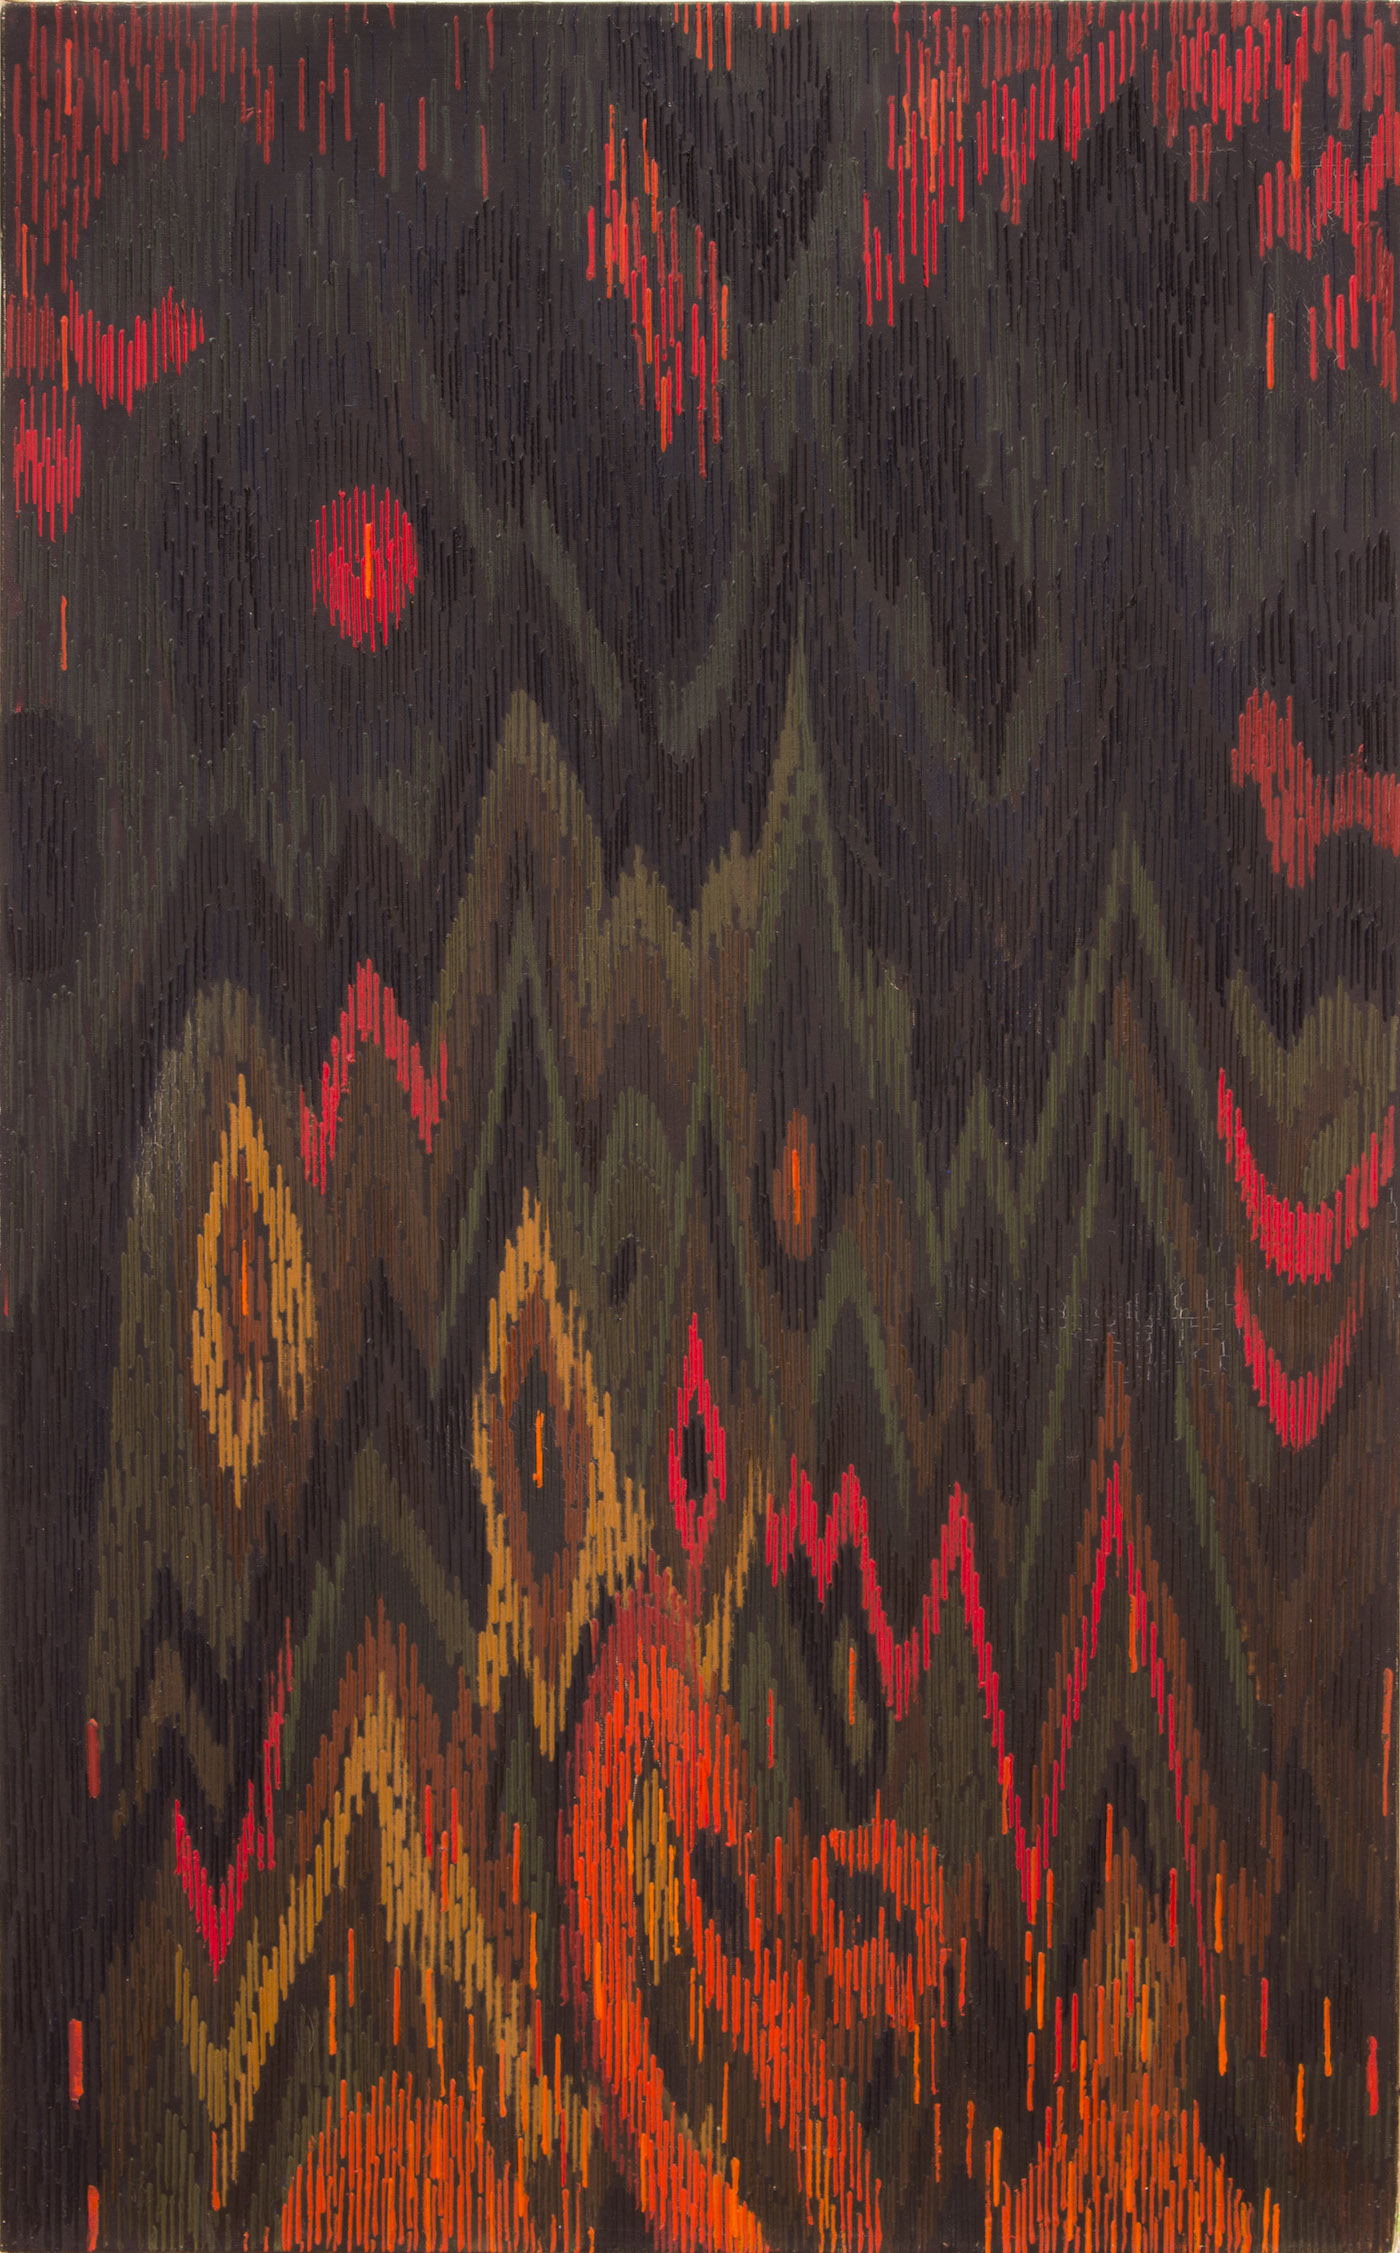 LEE MULLICAN The Diamond Mountains 1963 Oil on canvas 36 x 24 in.